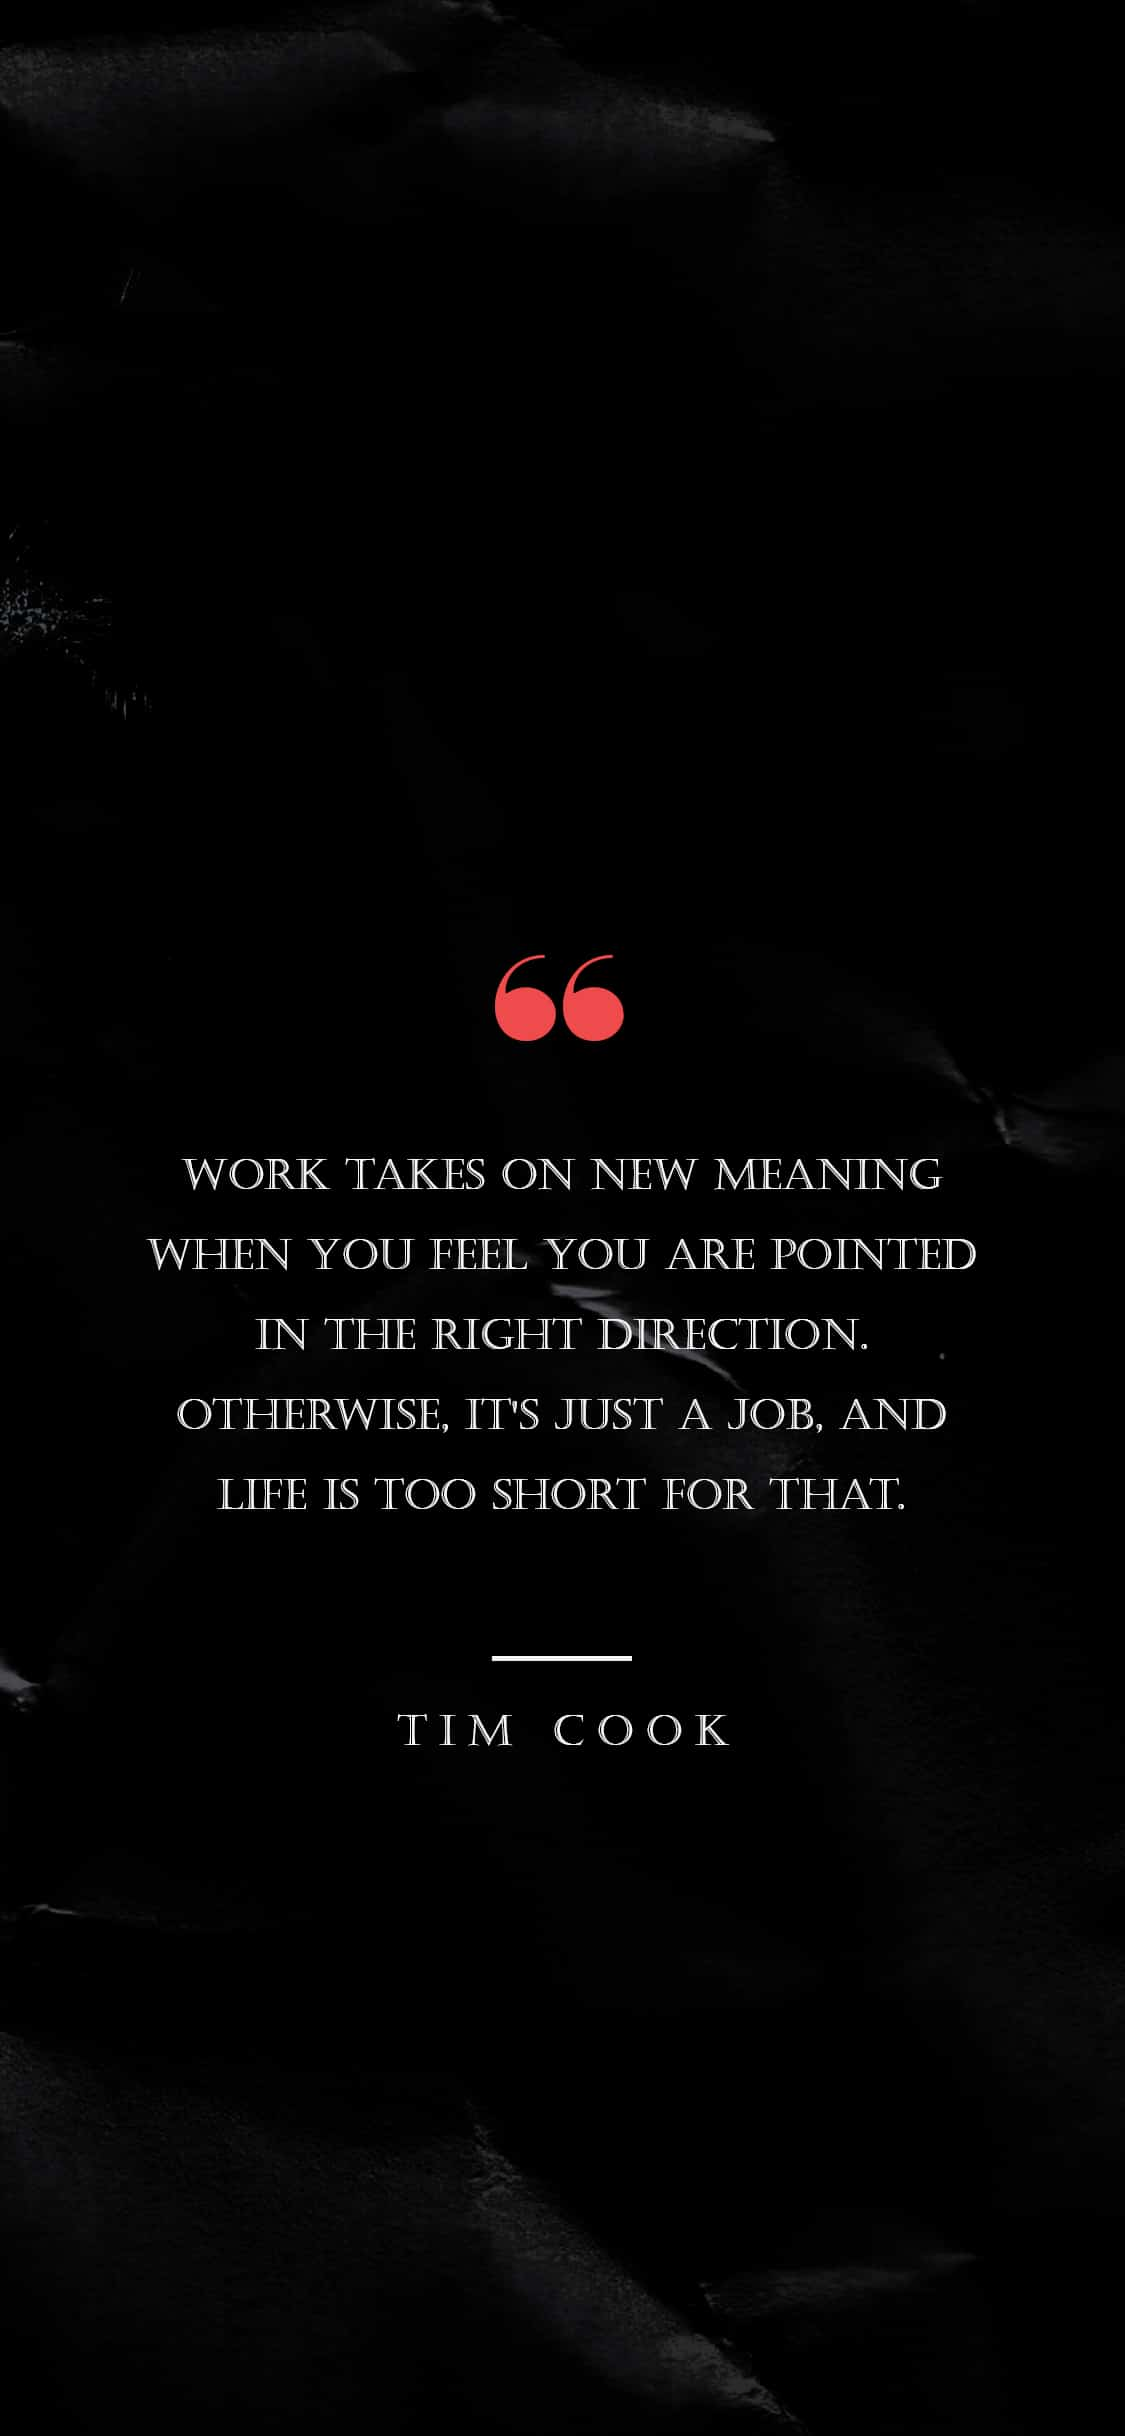 Tim Cook quote 1